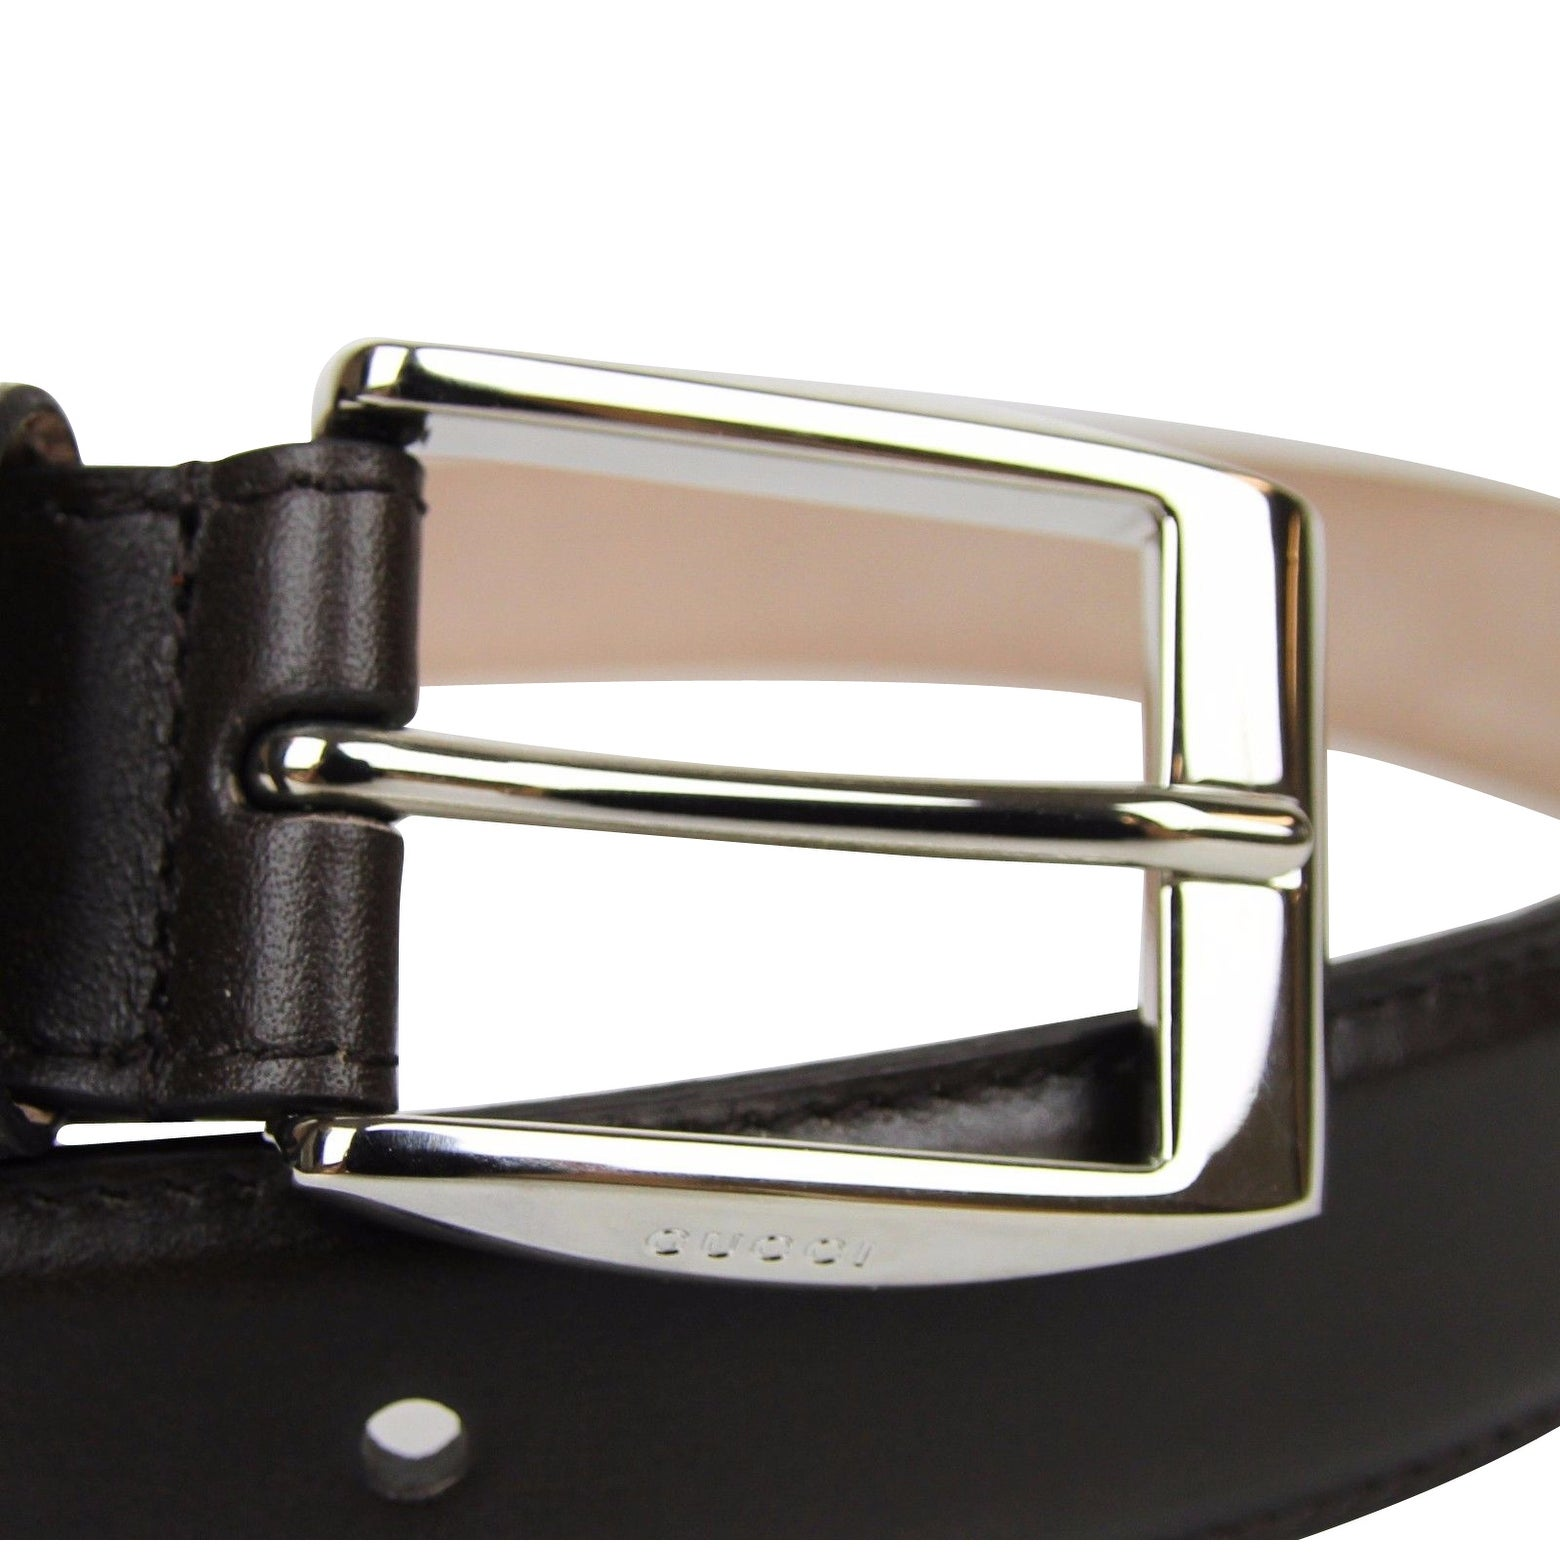 848ecb66bdd Shop New Gucci Men s Classic Dark Brown Leather Belt with Square Buckle  336831 2140 - Free Shipping Today - Overstock - 25452917